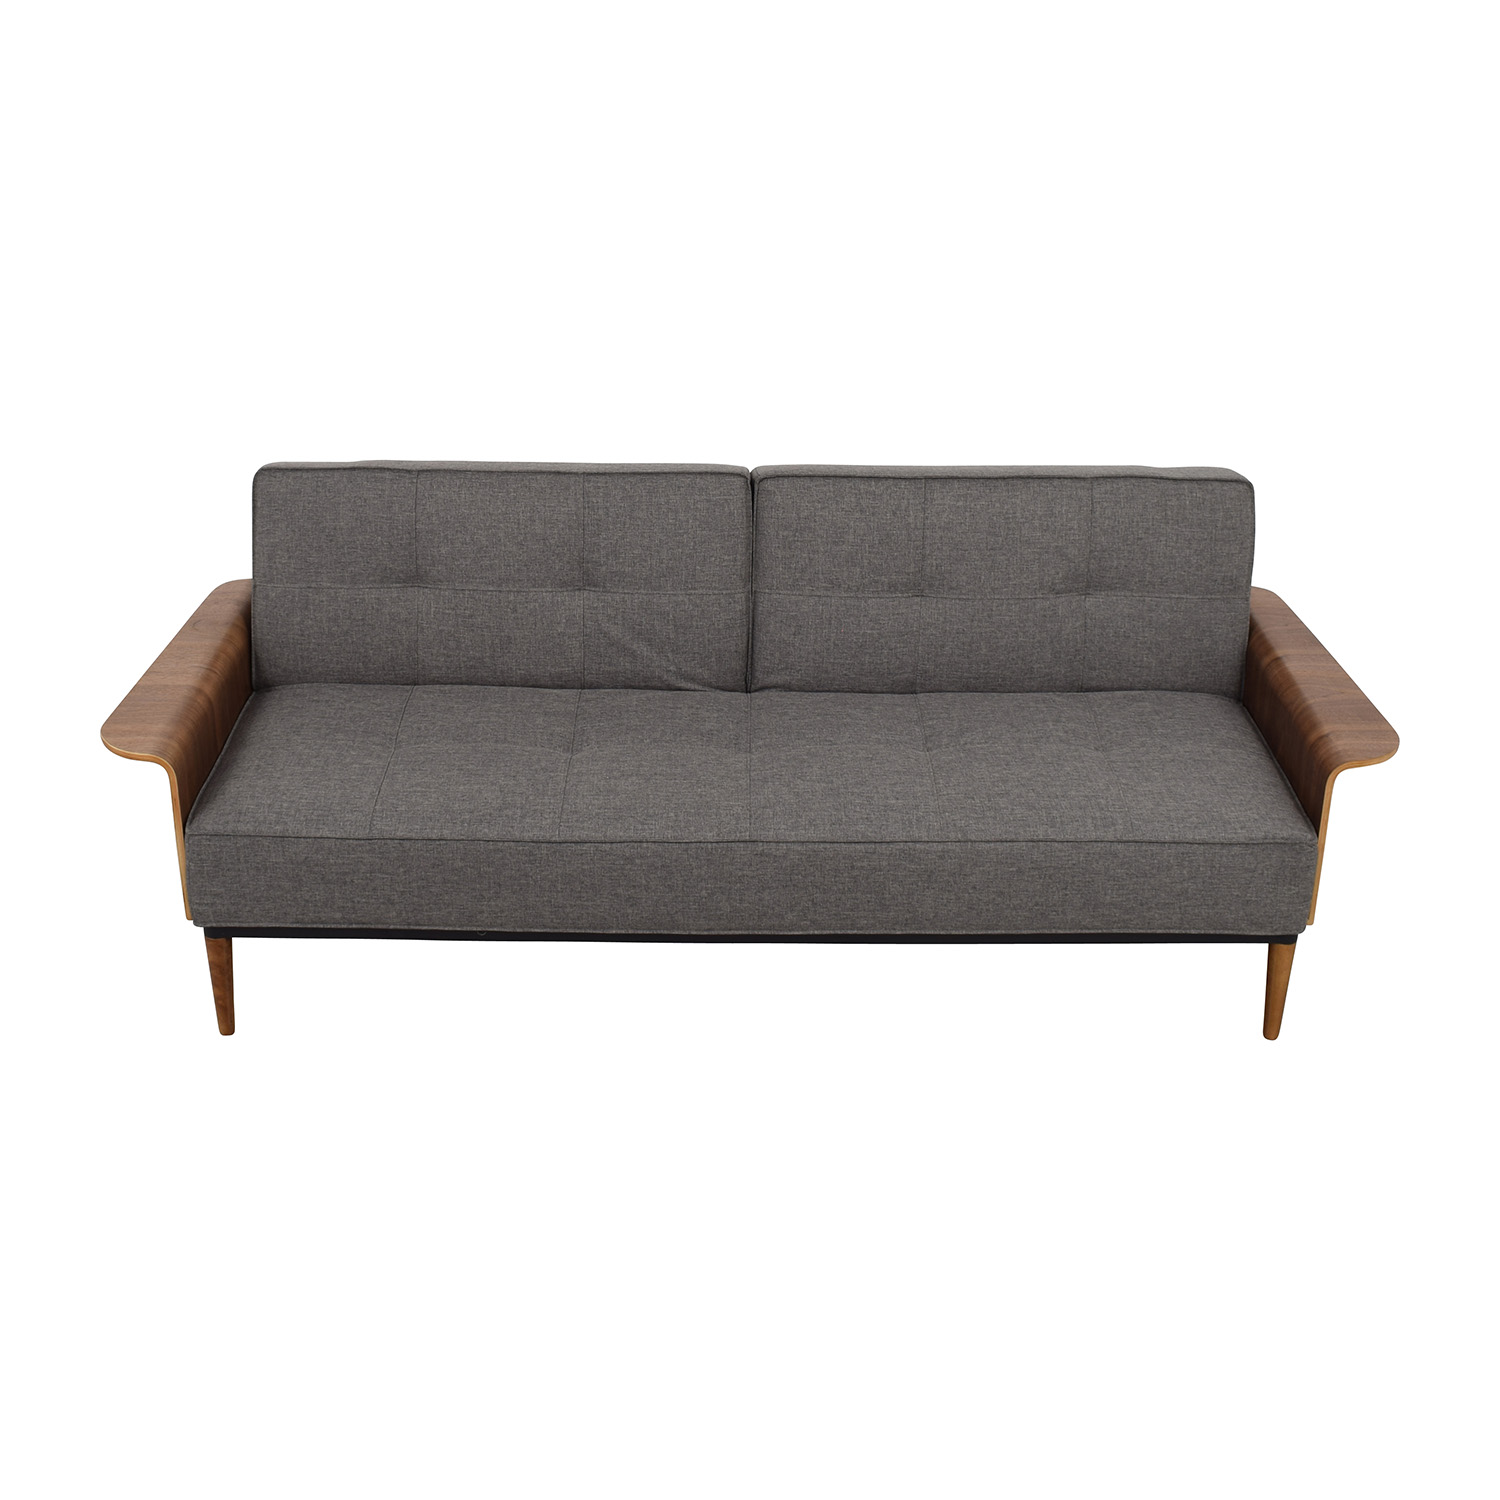 InMod InMod Bjorg Tufted Dark Grey Sofabed nj